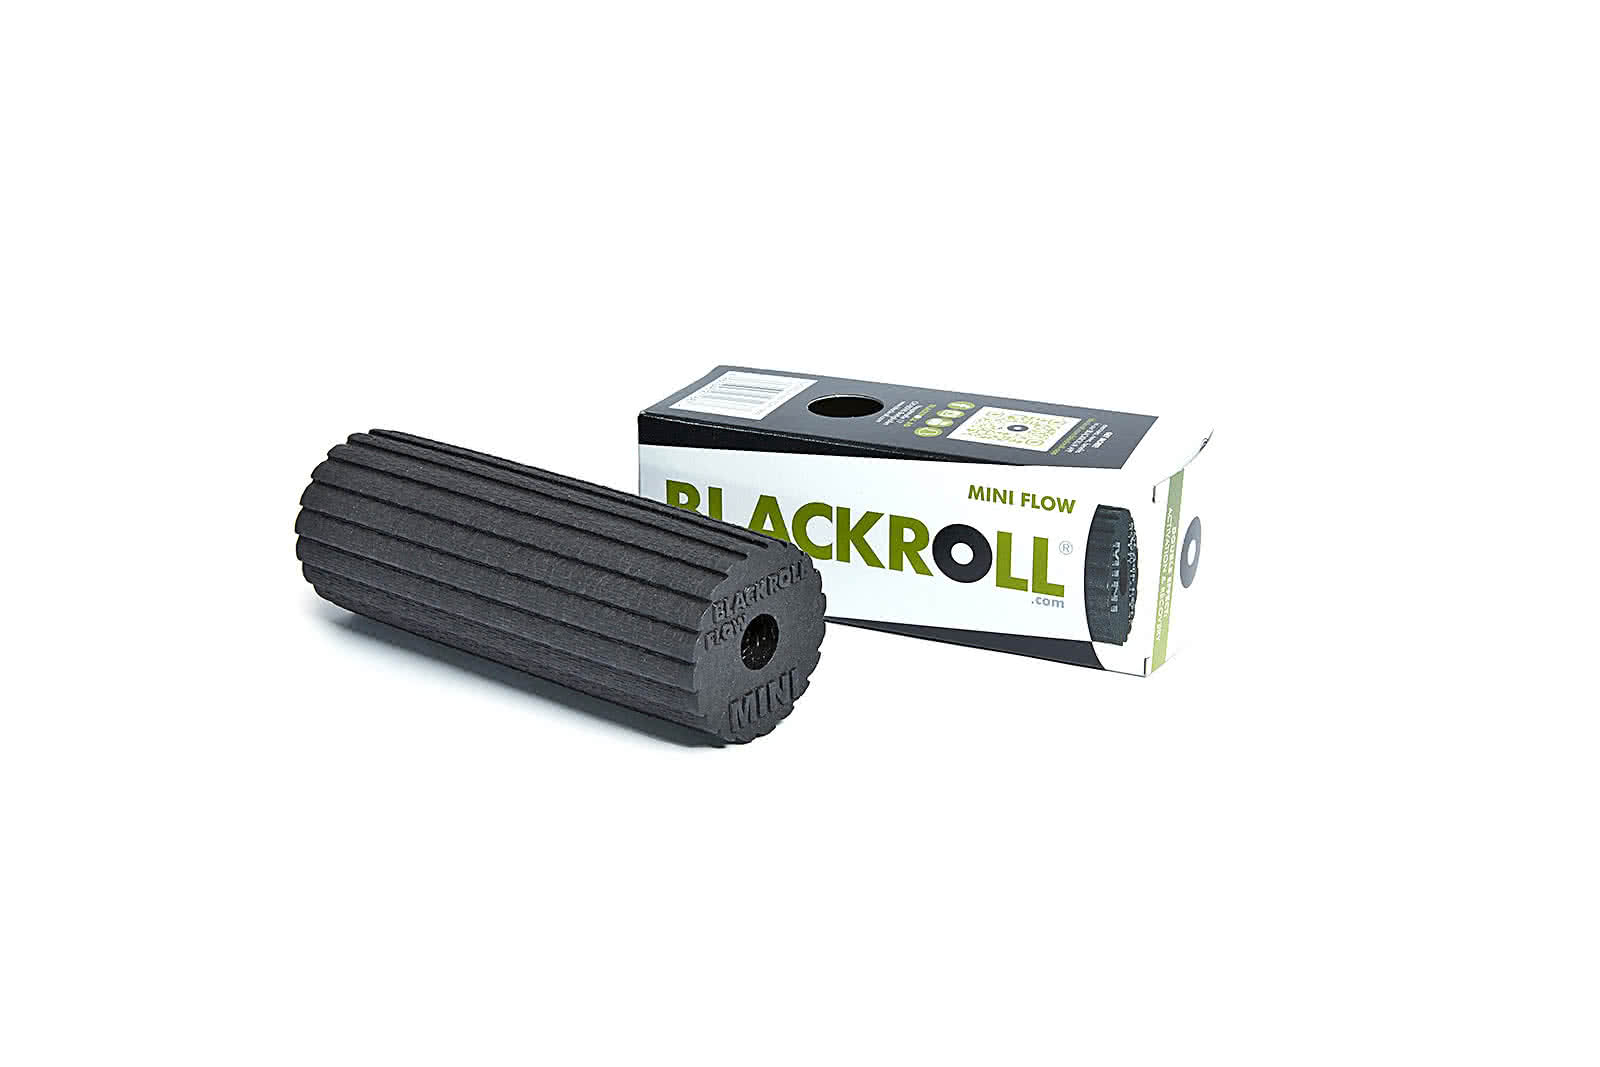 Blackroll Mini Flow SMR henger 15 x 6 cm db